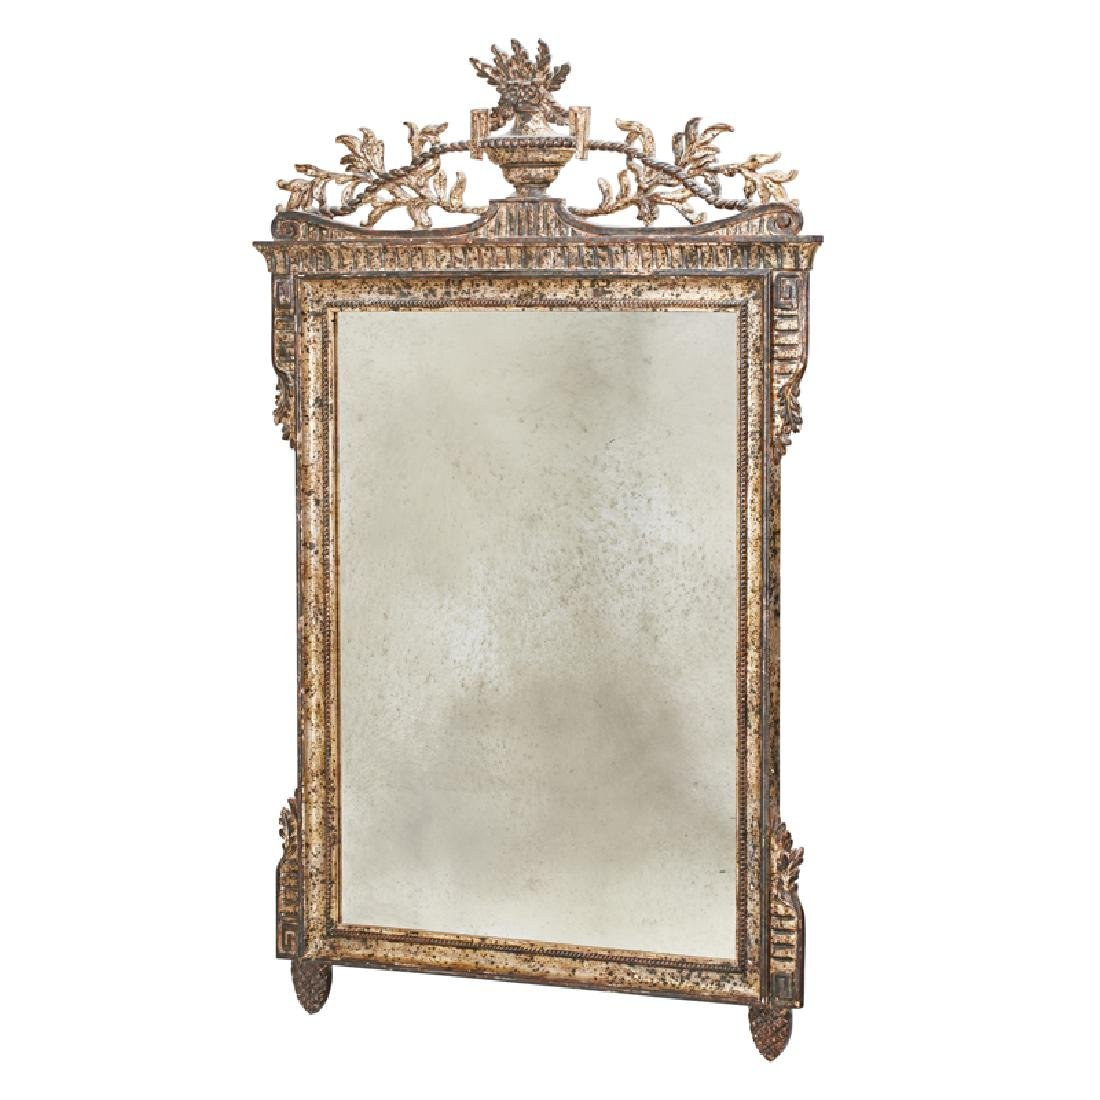 NEOCLASSICAL STYLE SILVERED WOOD MIRROR